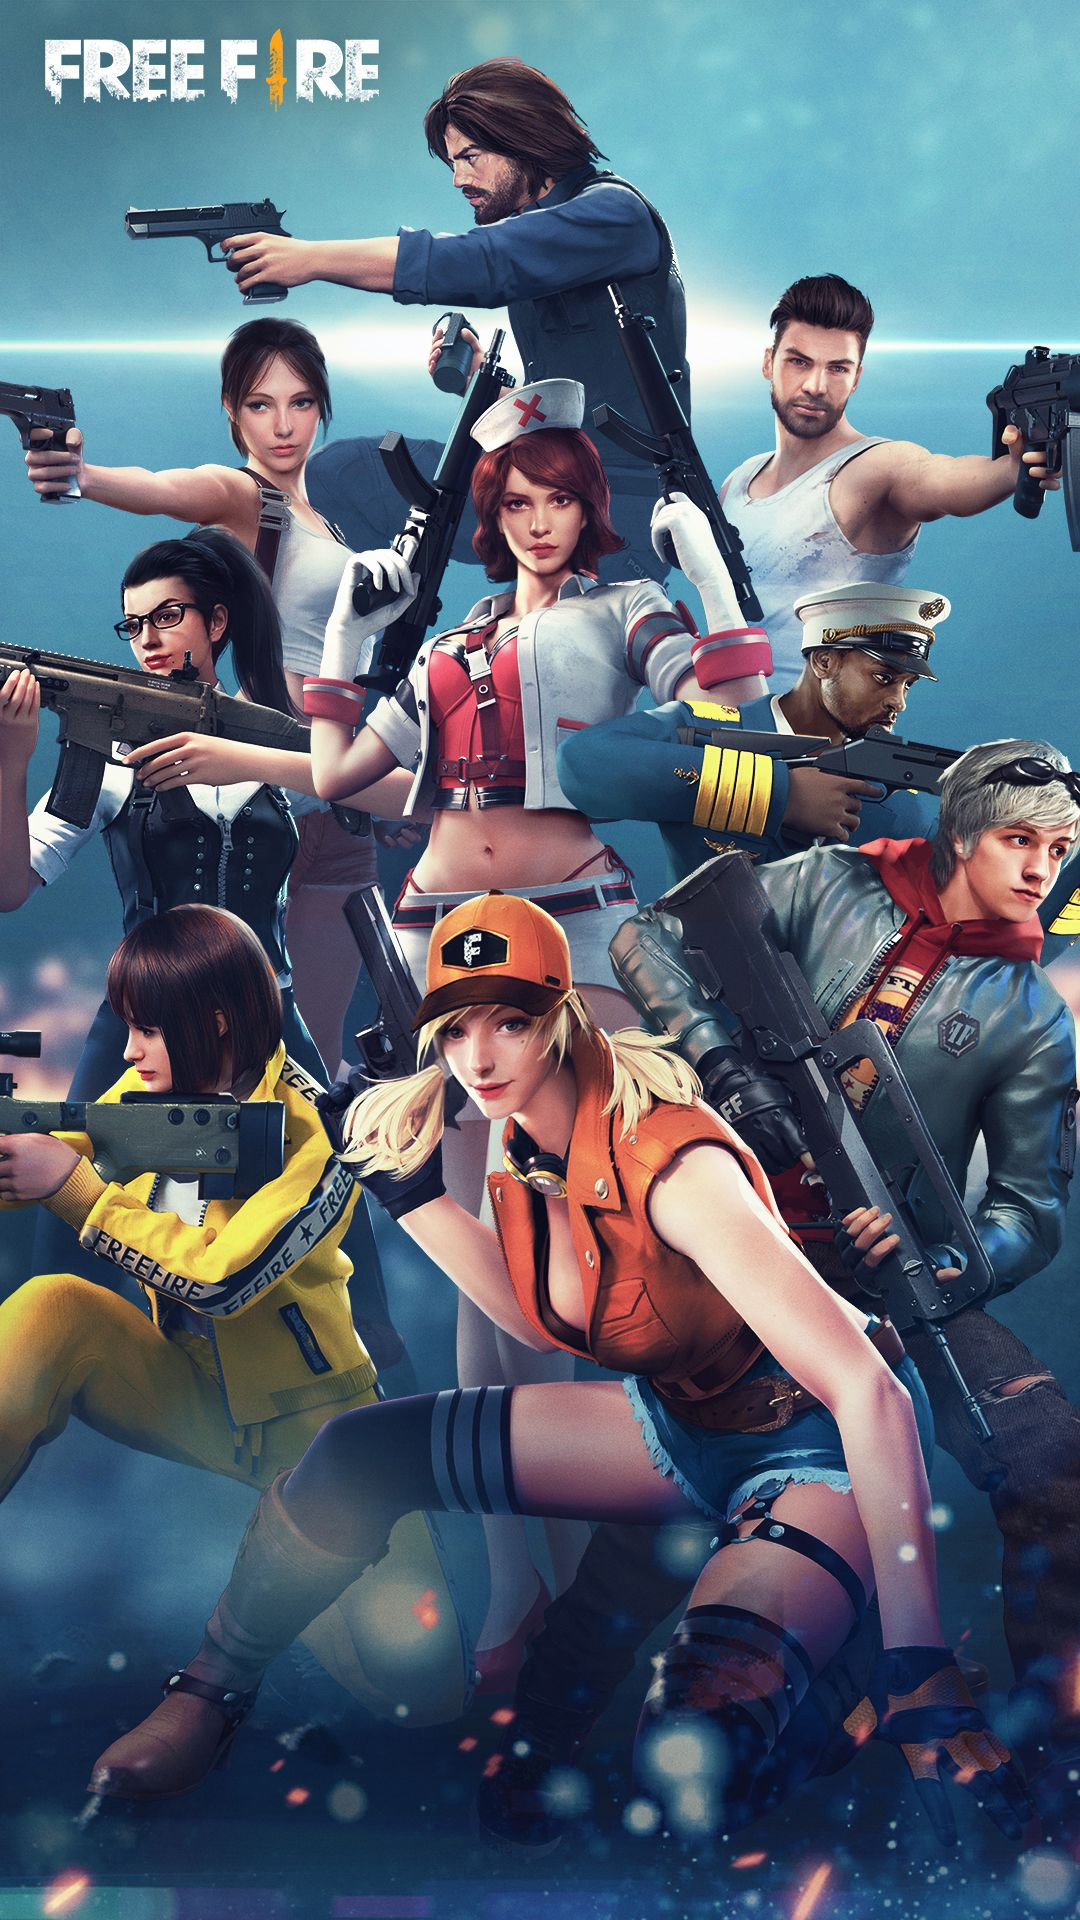 Garena Free Fire Apk Mod In 2020 Game Download Free Squad Game Fire Image